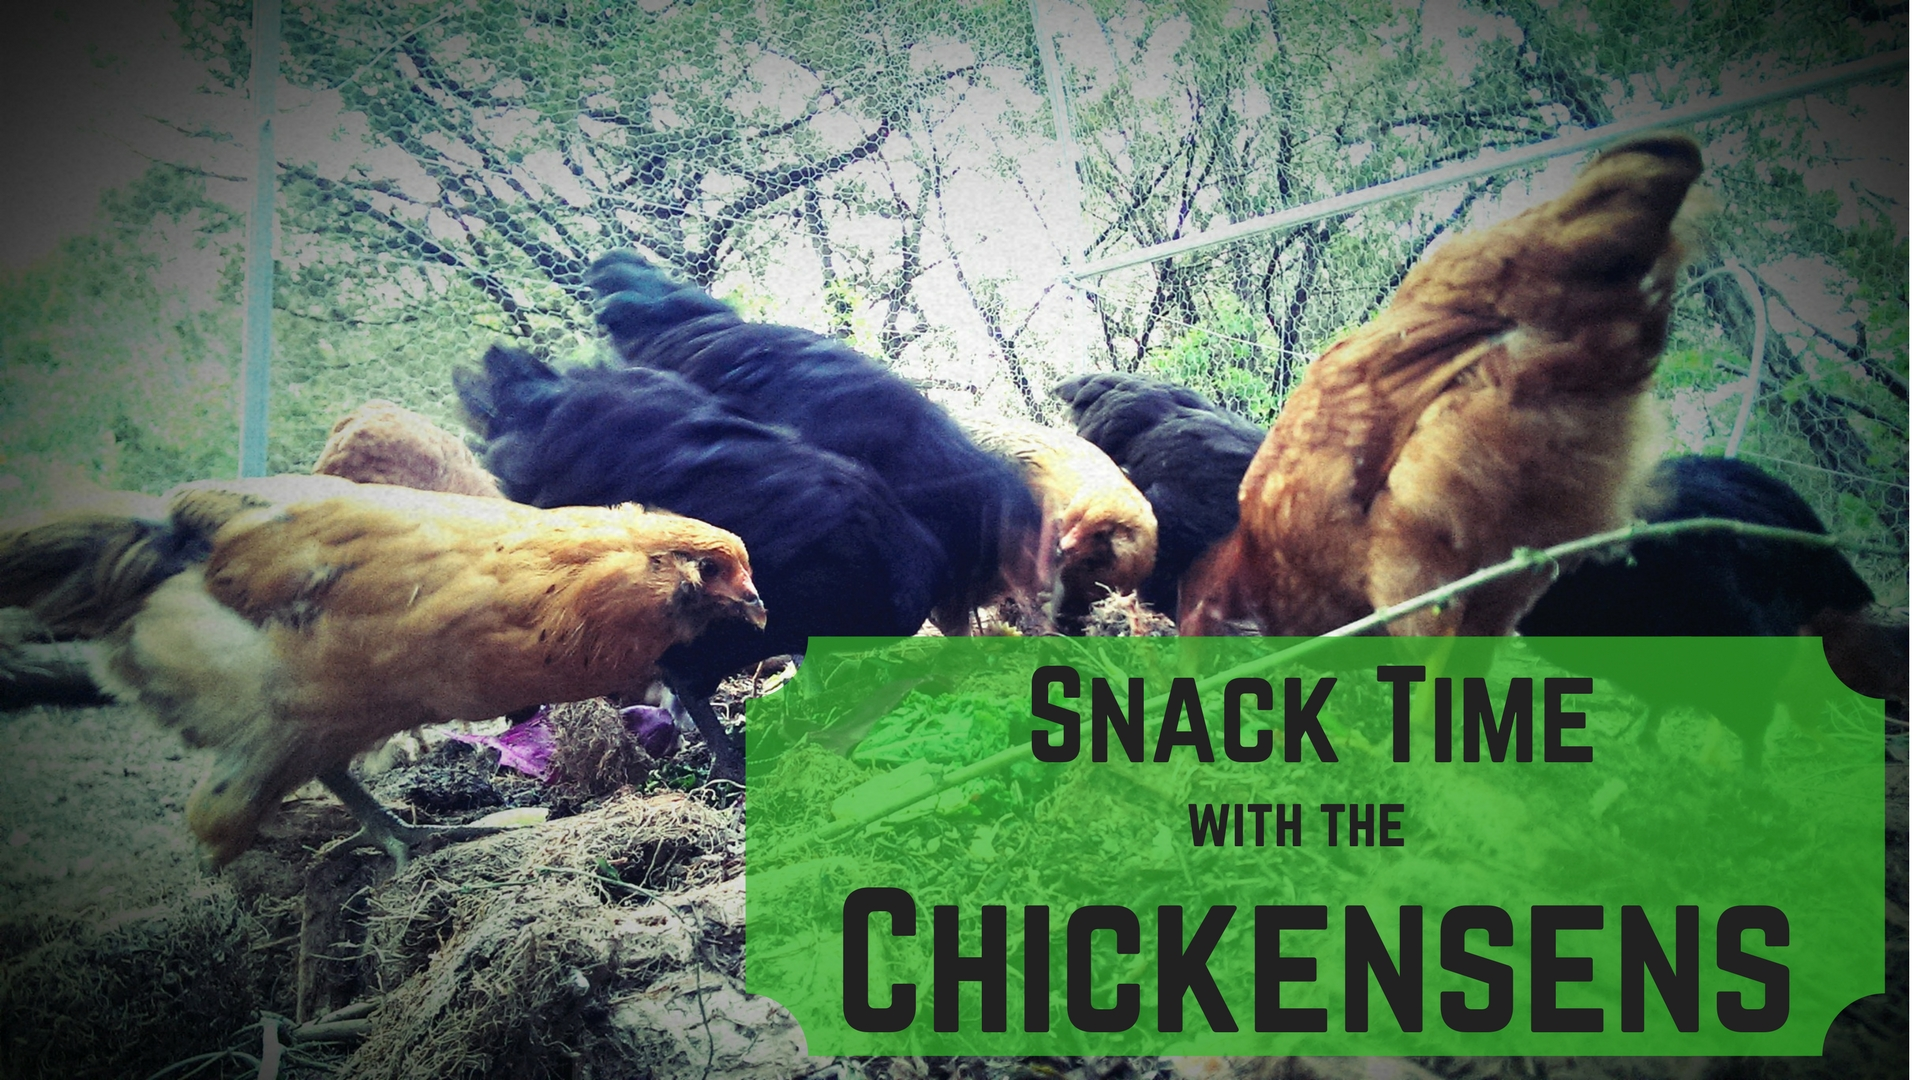 Snack Time with the Chickensens